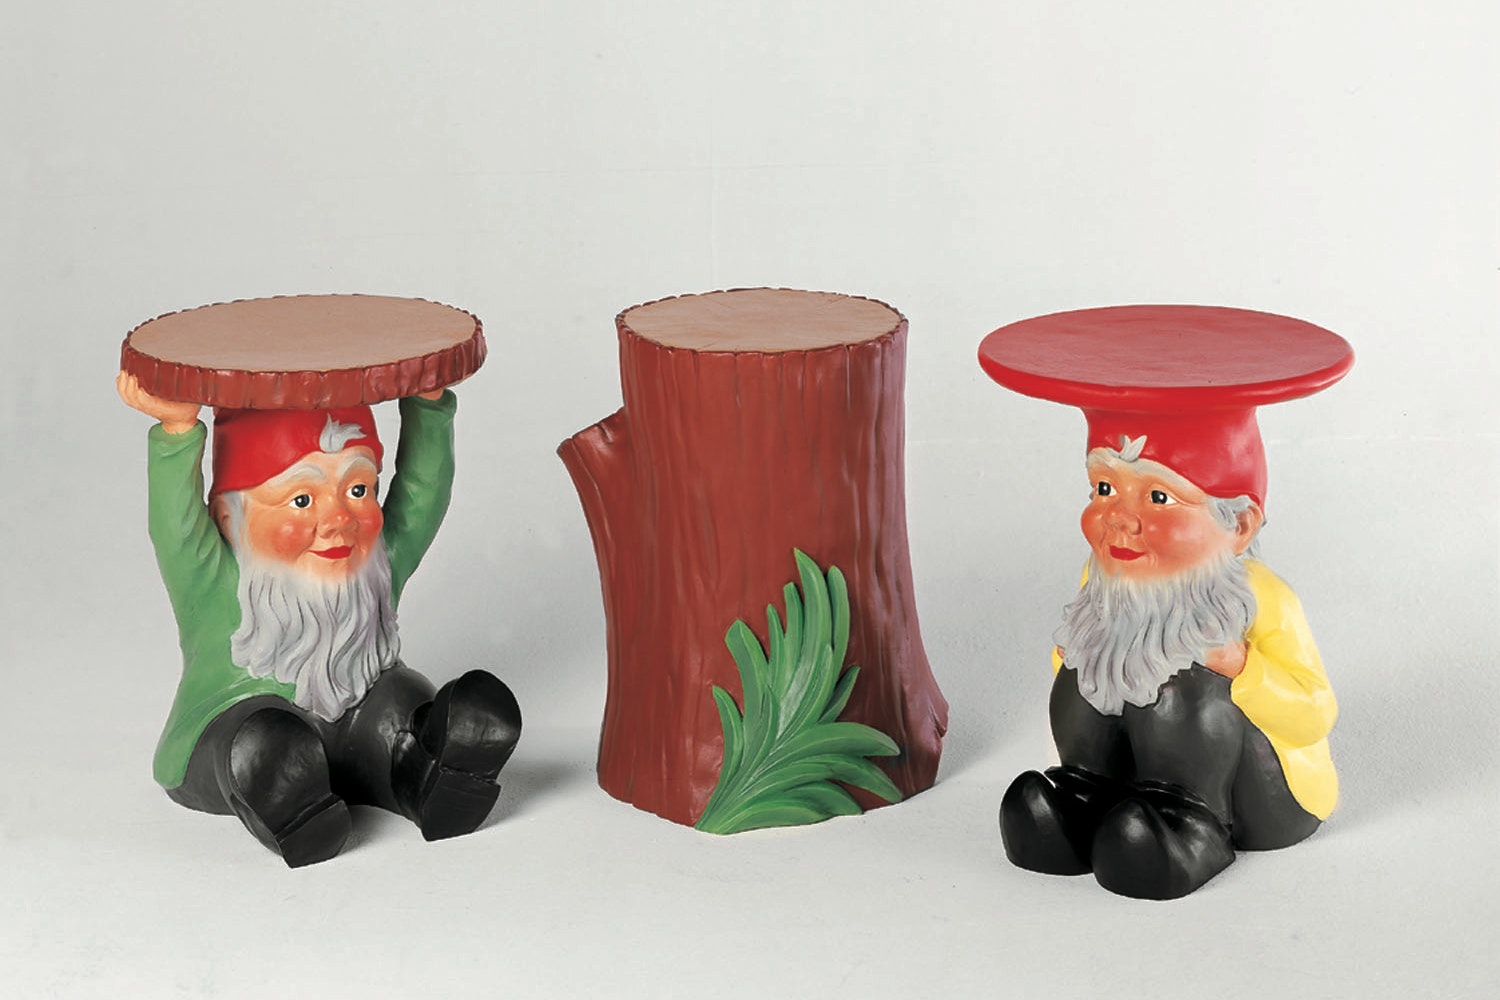 Gnomes Stool by Philippe Starck for Kartell